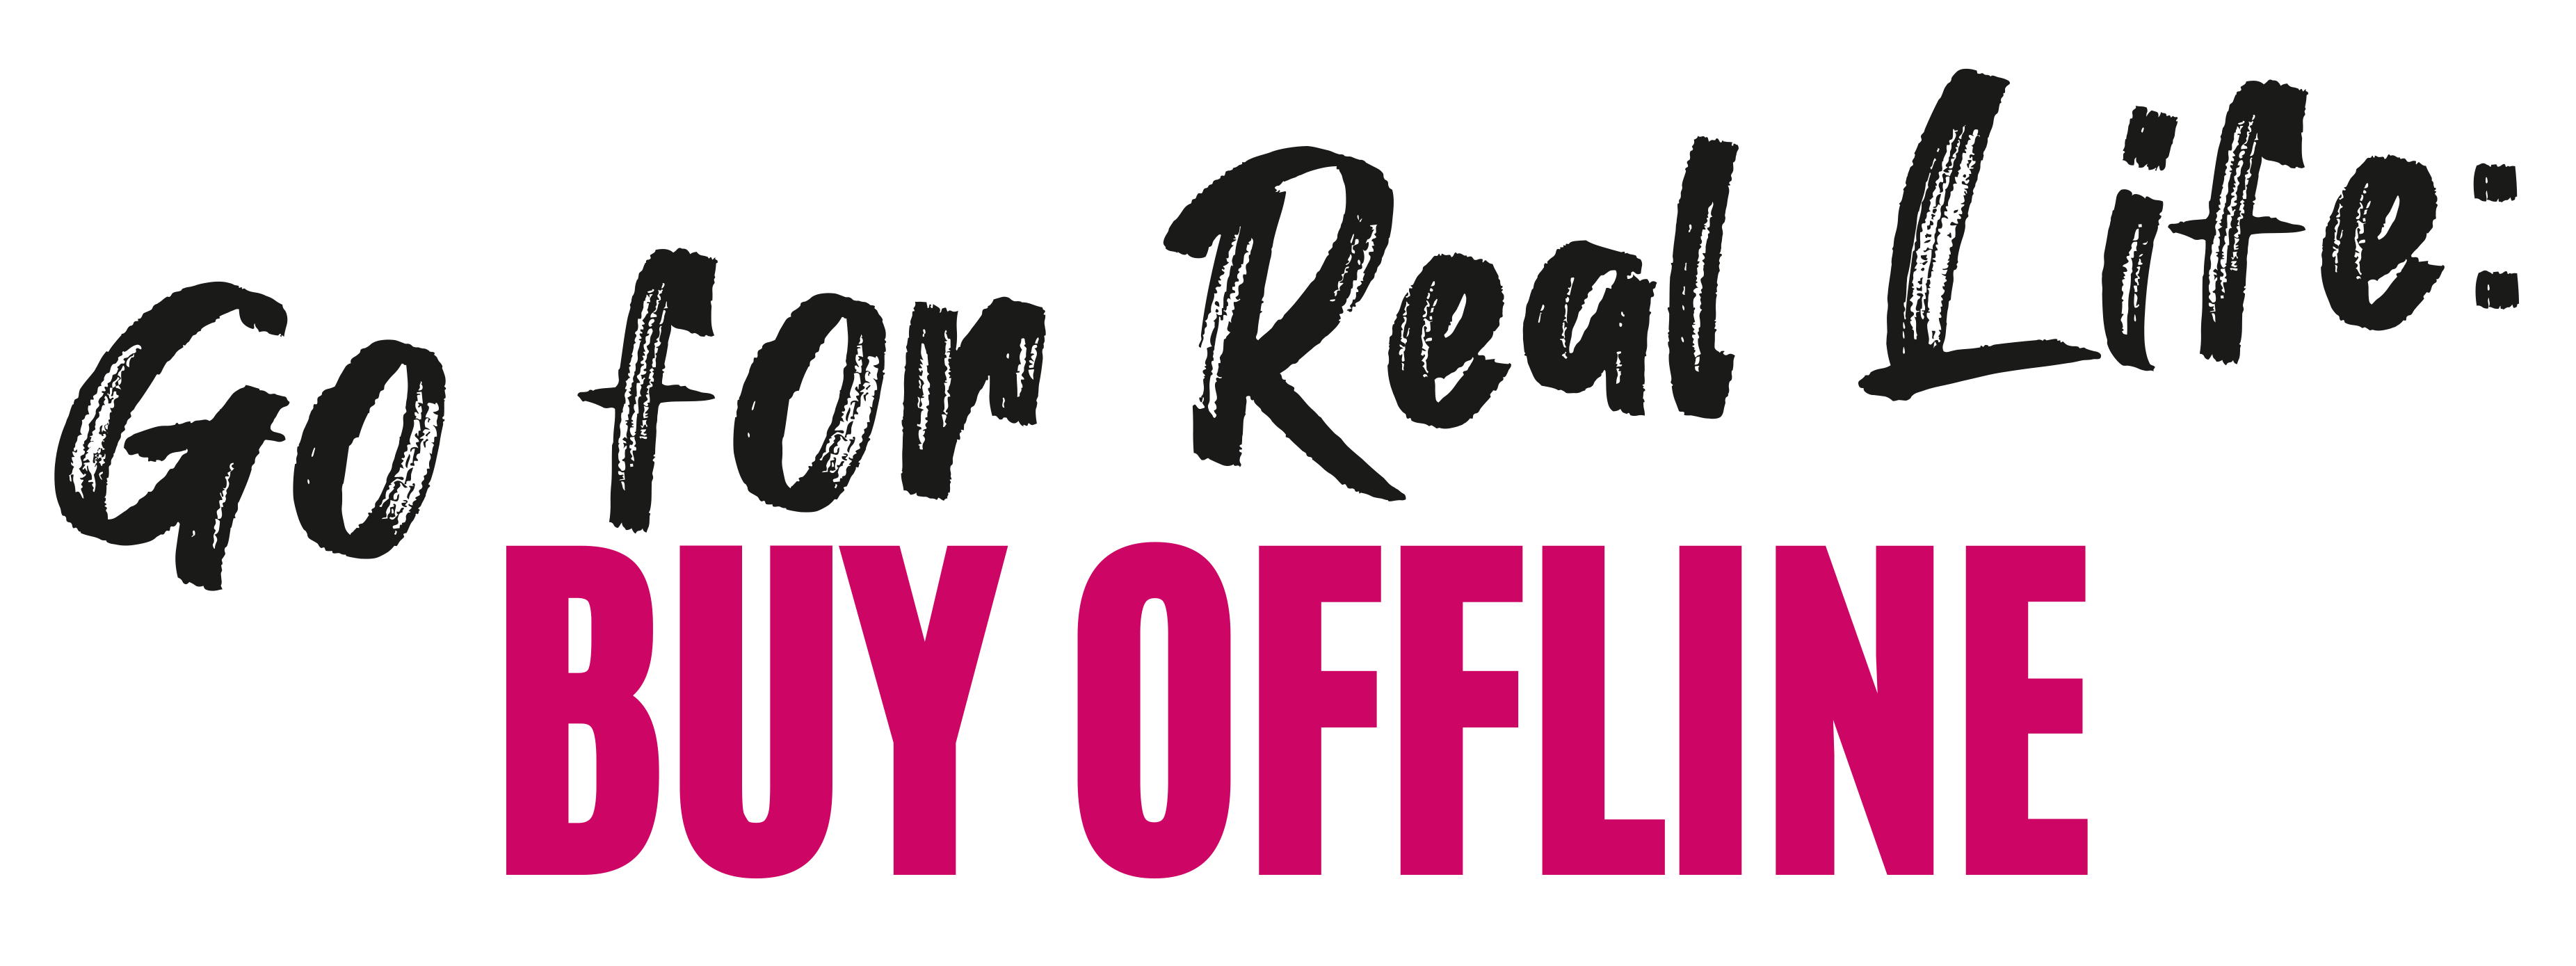 Go for Real Life: Buy offline